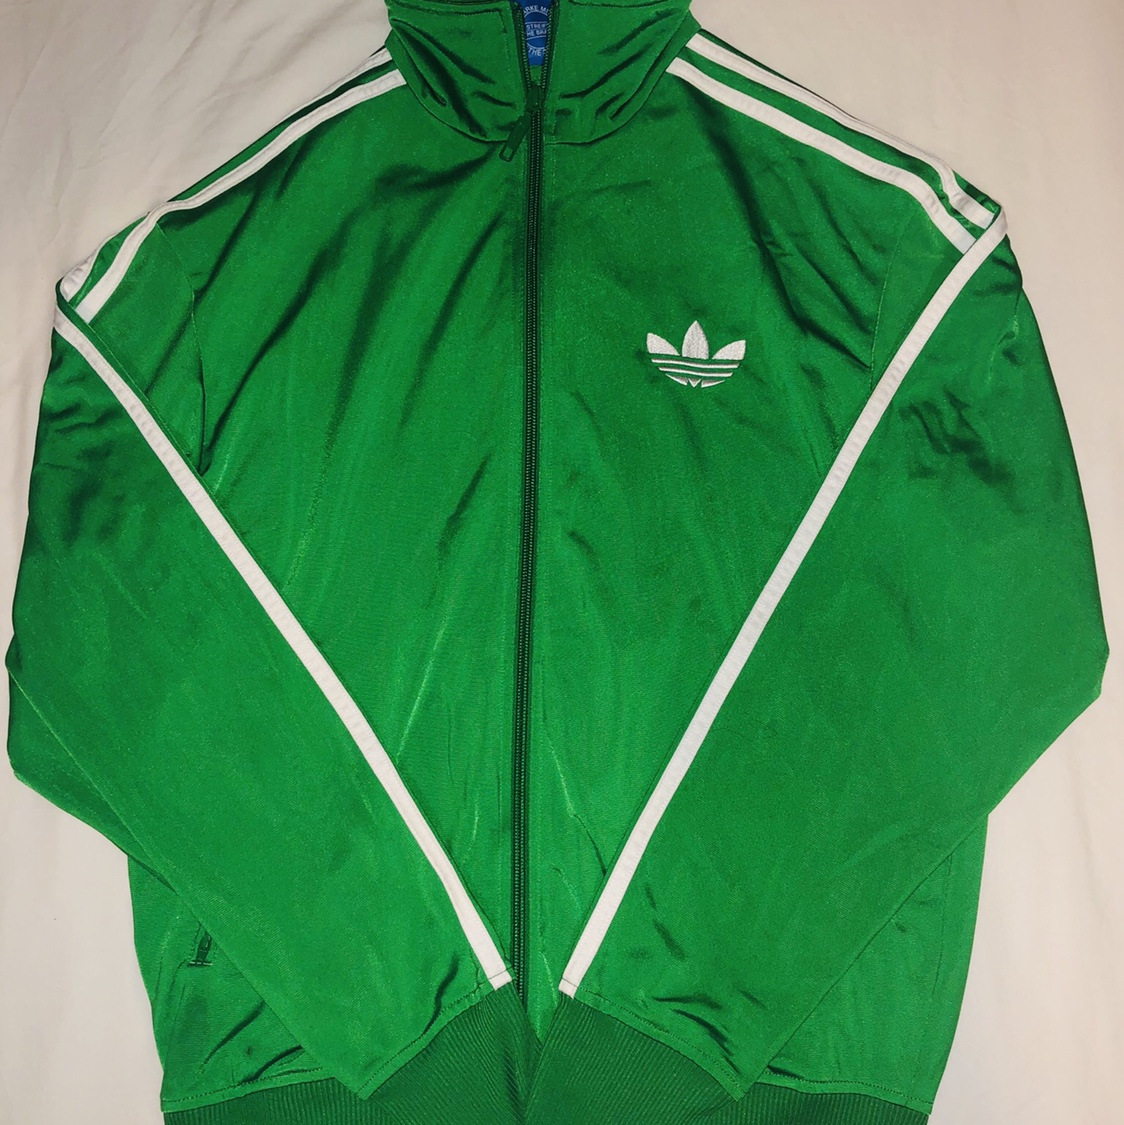 Bright green Adidas 80s style track Jacket in mens Depop